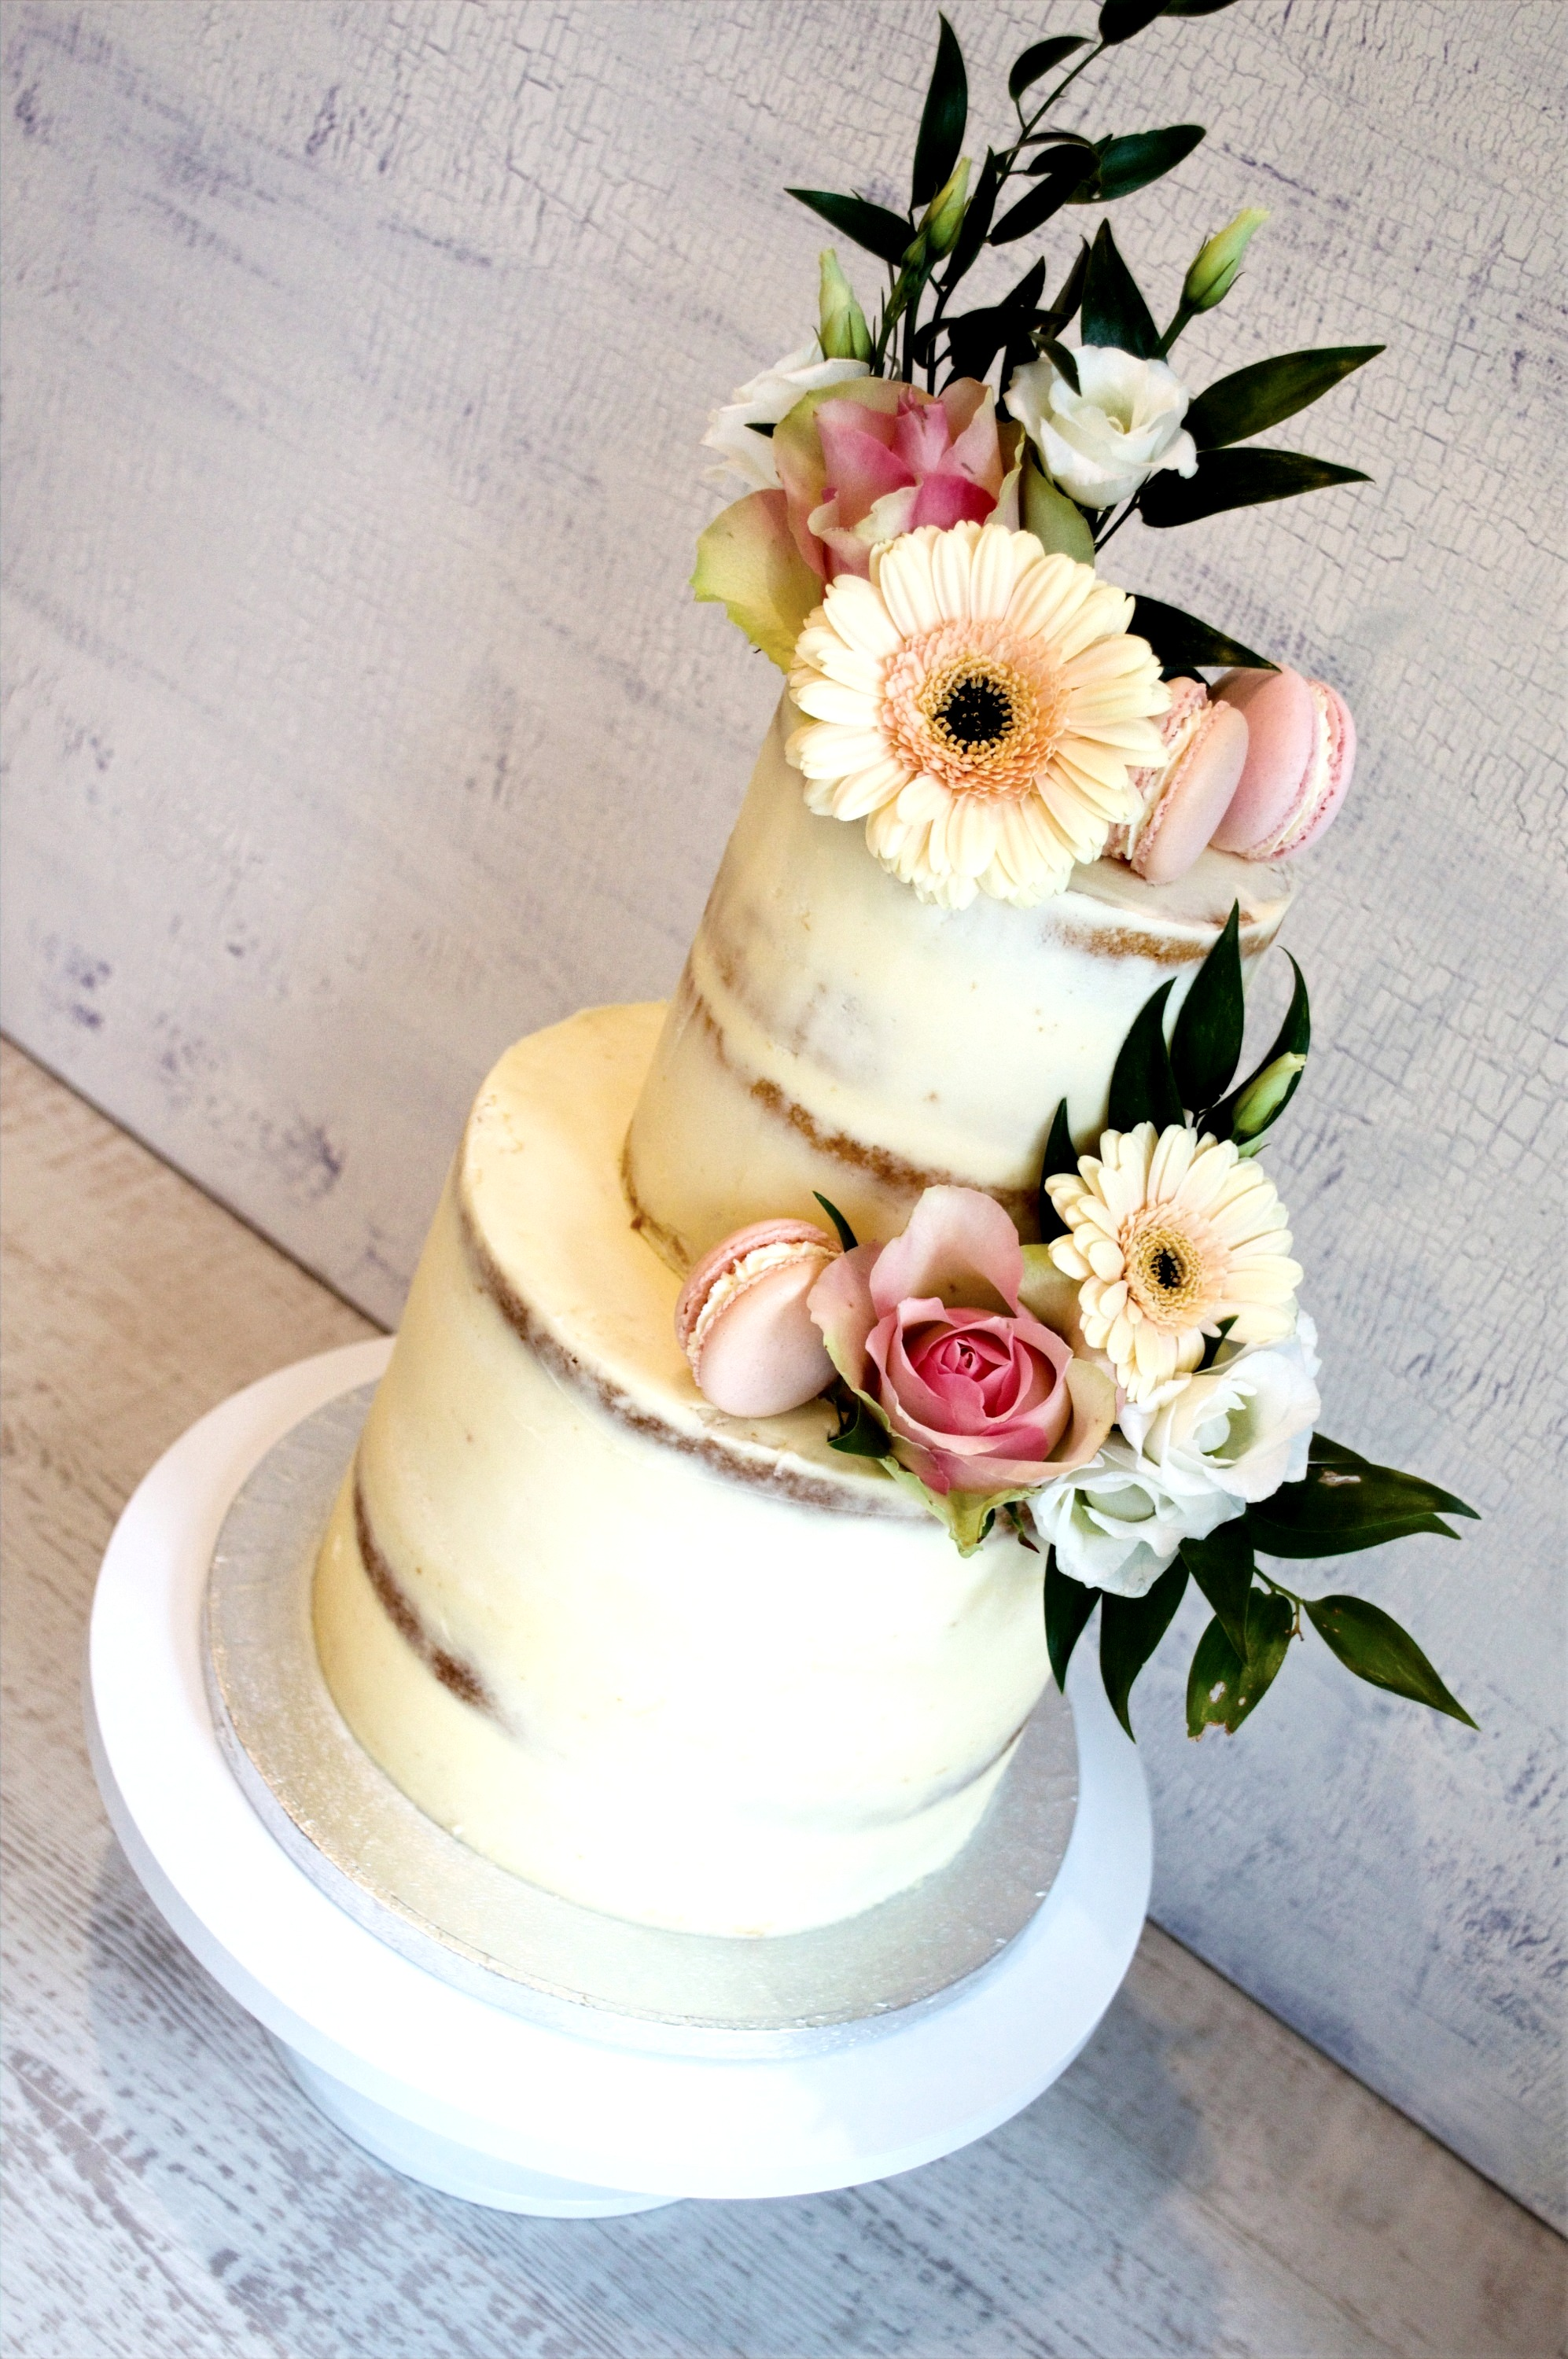 Semi-naked%2520wedding%2520cake%2520with